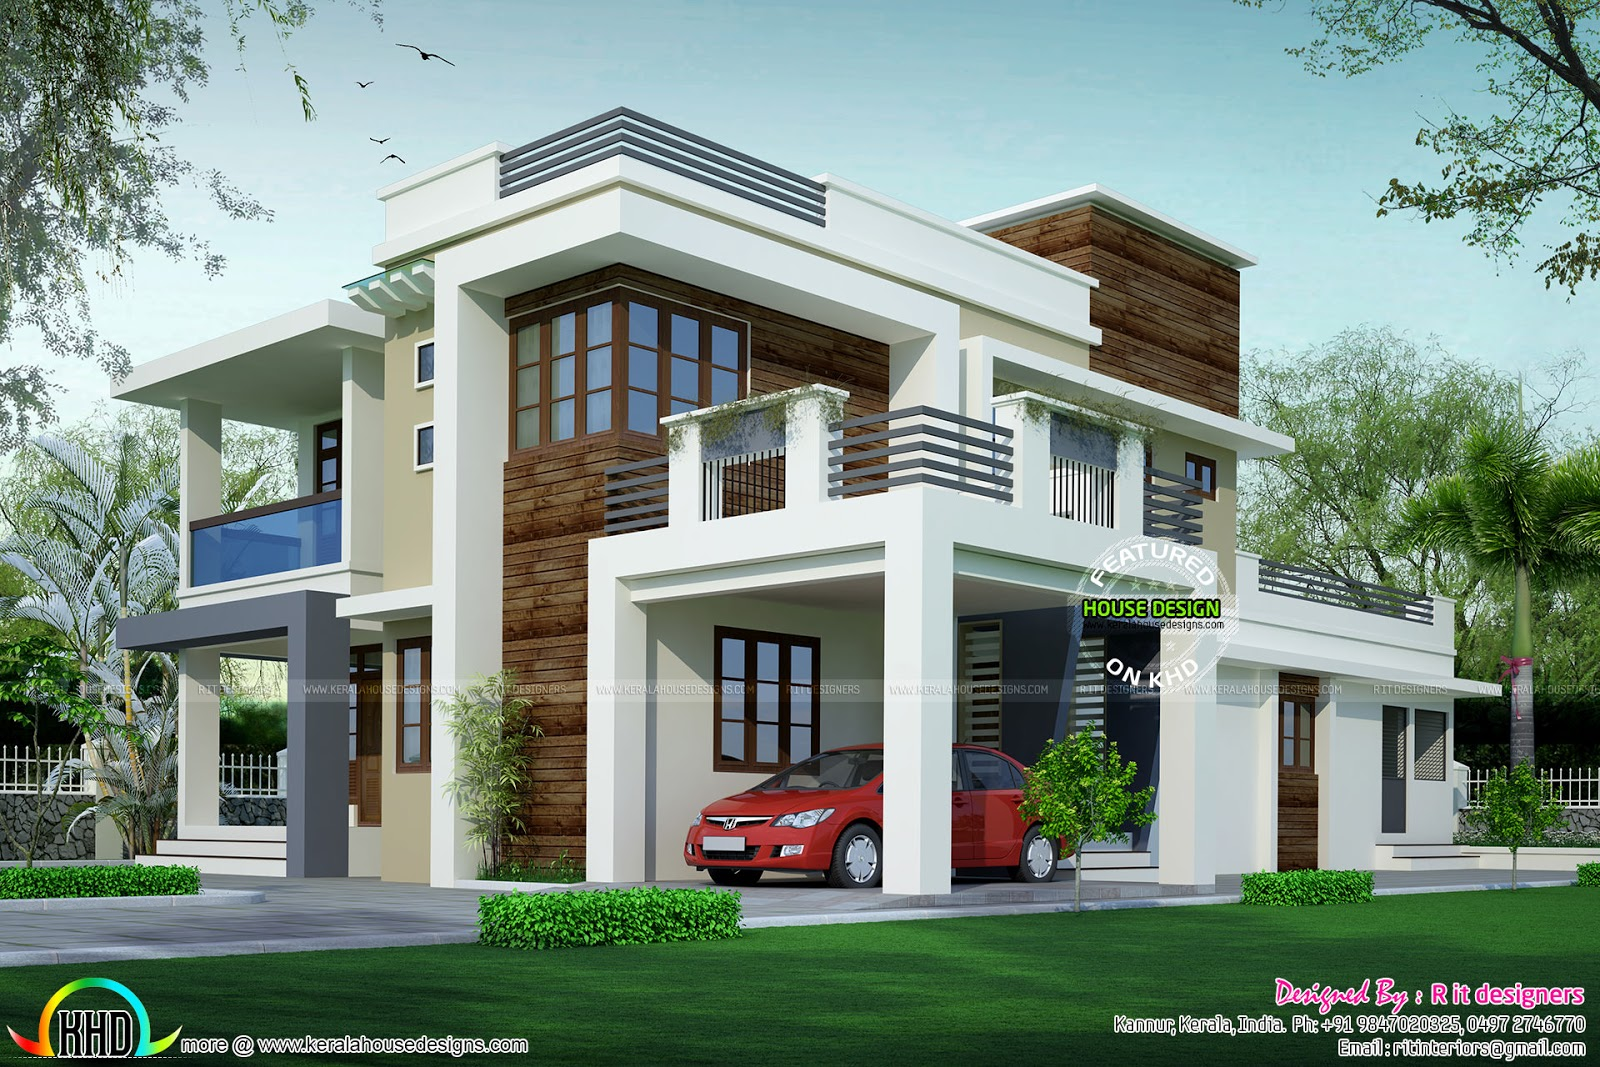 House design contemporary model kerala home design and for House models and plans